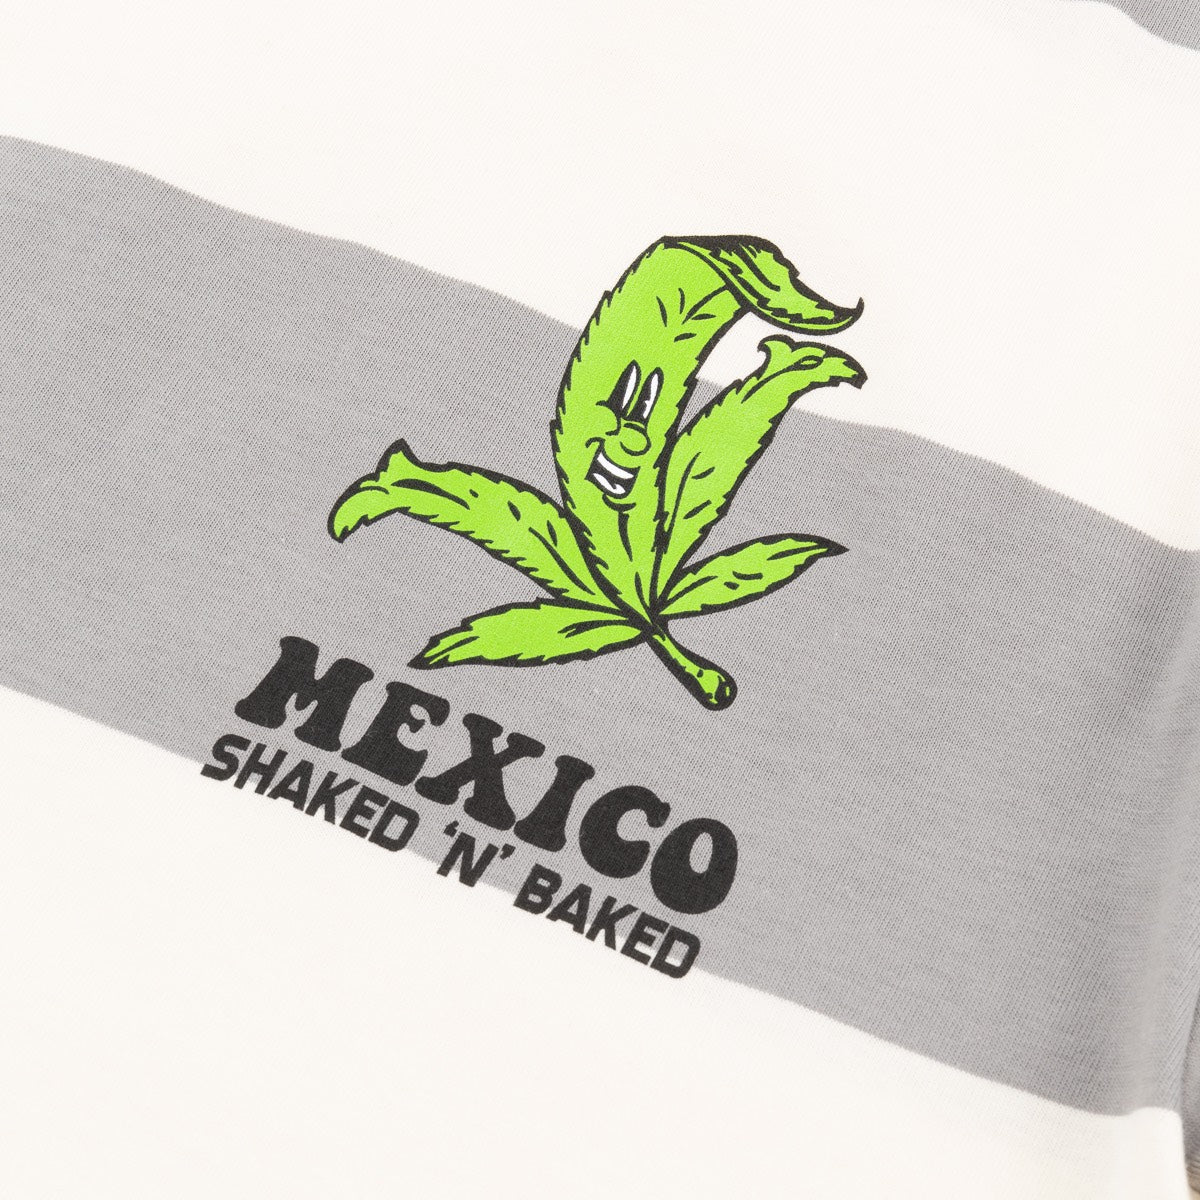 SHAKED N BAKED LS BORDER TEE